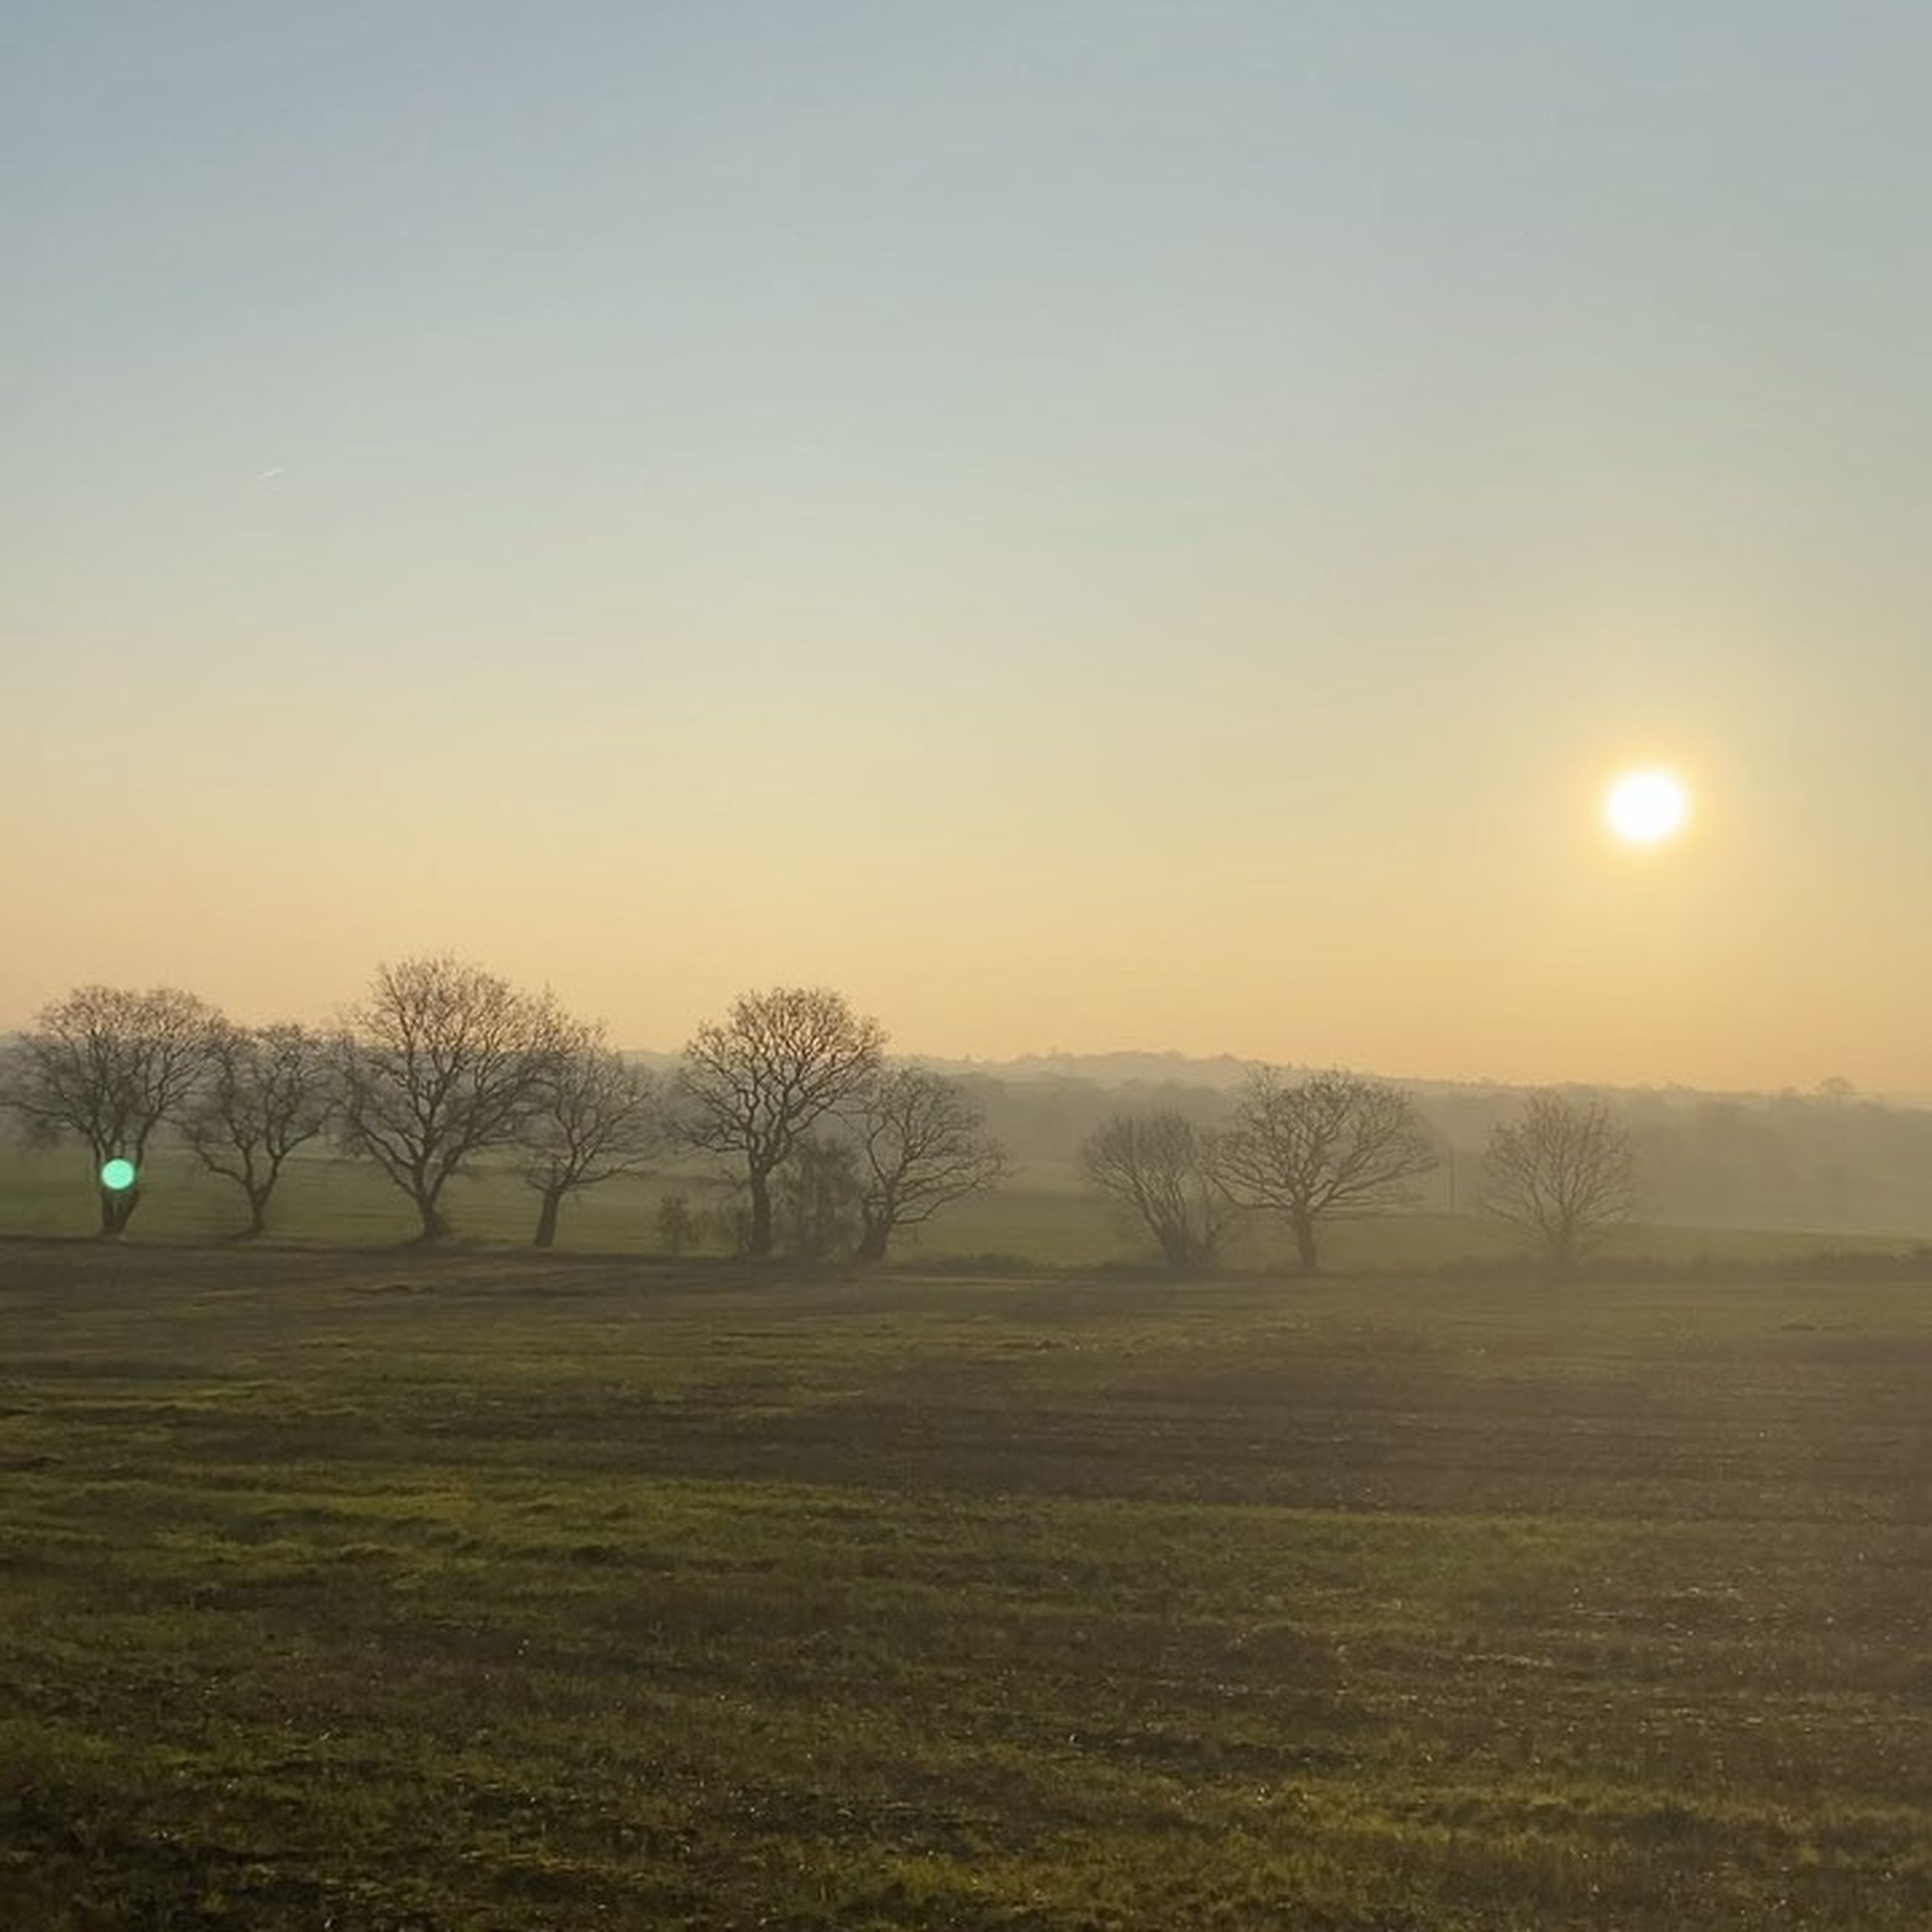 tree, sky, plant, tranquility, scenics - nature, beauty in nature, landscape, environment, tranquil scene, field, sunset, nature, no people, sun, grass, land, clear sky, non-urban scene, bare tree, outdoors